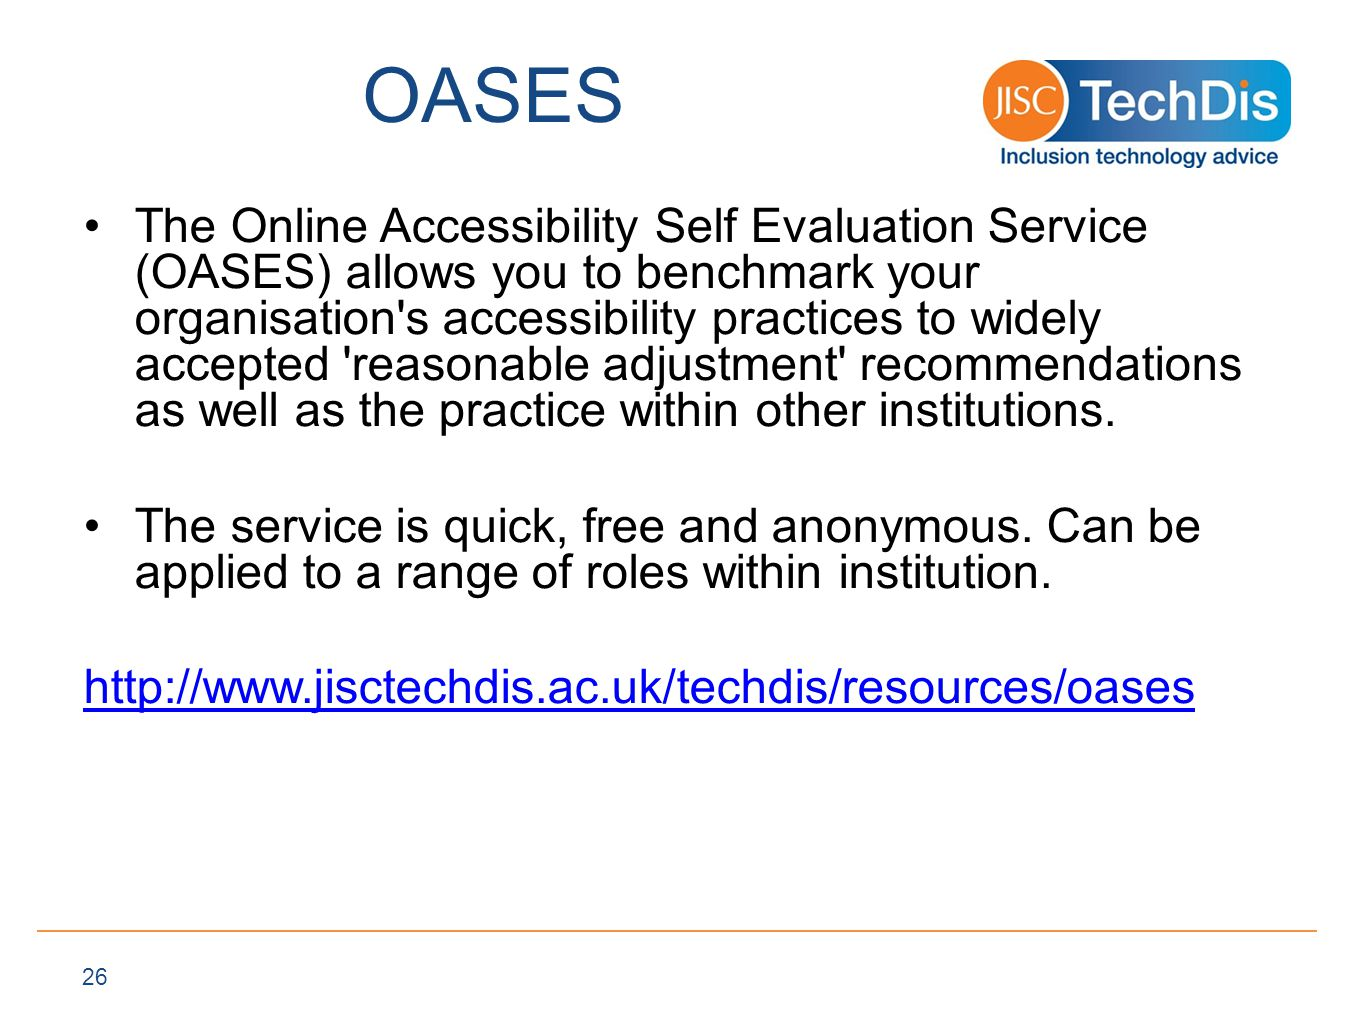 OASES The Online Accessibility Self Evaluation Service (OASES) allows you to benchmark your organisation s accessibility practices to widely accepted reasonable adjustment recommendations as well as the practice within other institutions.